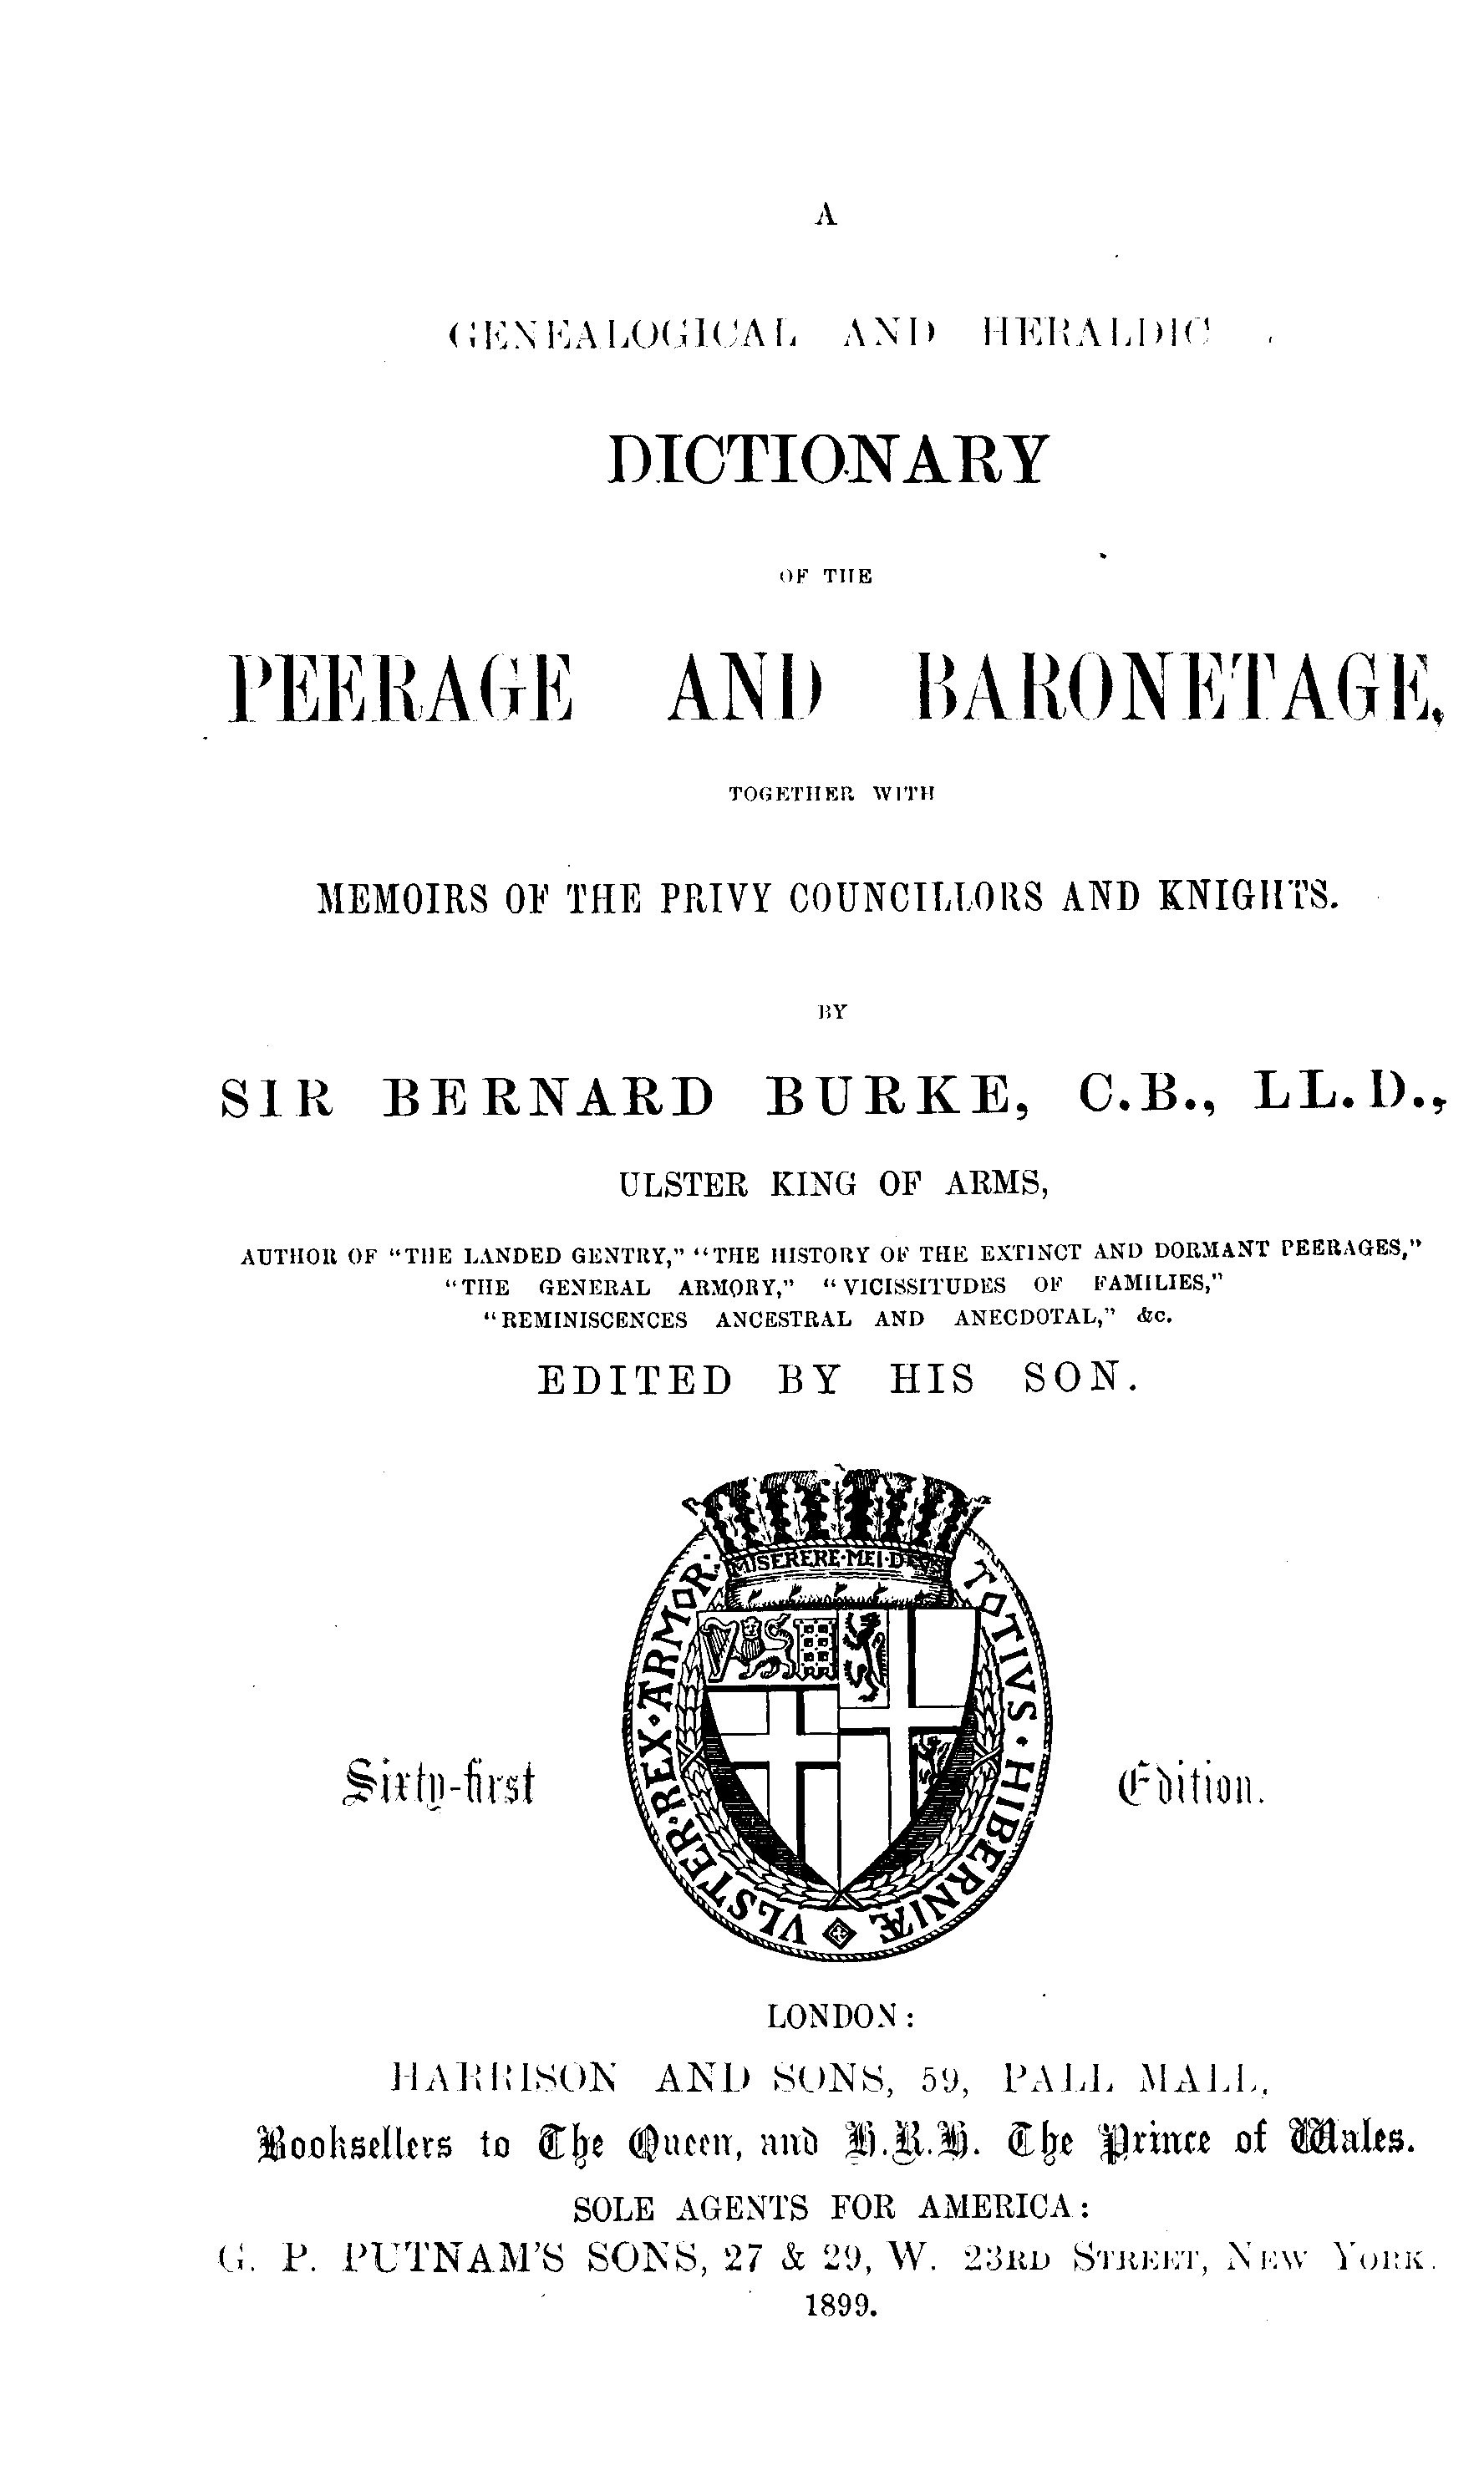 Burke's Peerage, Baronetage, and Knightage 1899 page title - click to open larger version in a new window